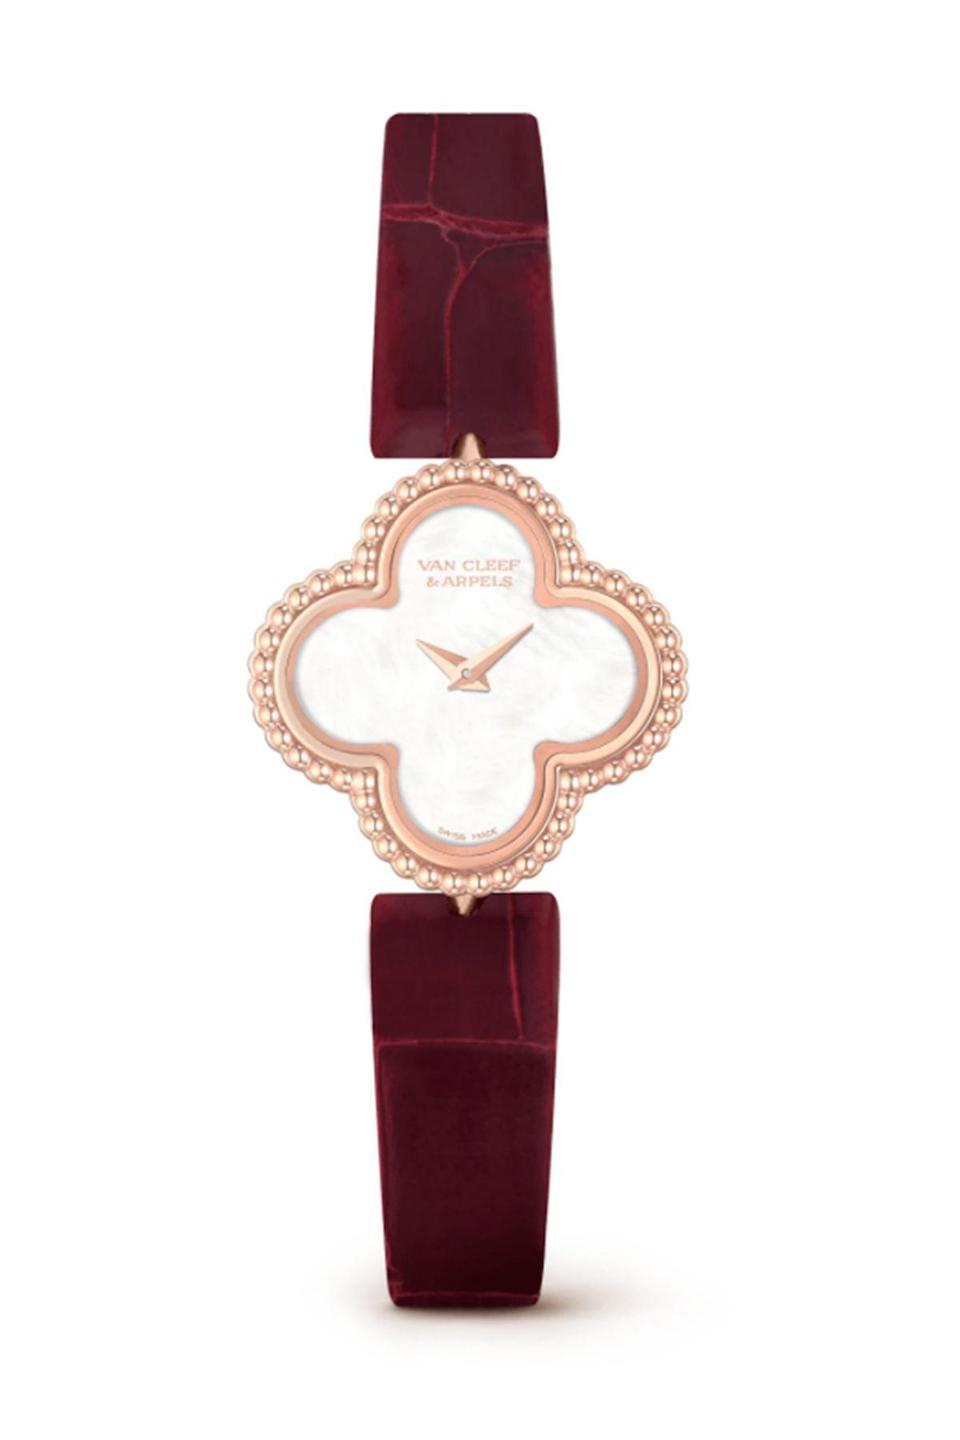 """<p><strong>Van Cleef & Arpels</strong></p><p>vancleefarpels.com</p><p><strong>$7150.00</strong></p><p><a href=""""https://go.redirectingat.com?id=74968X1596630&url=https%3A%2F%2Fwww.vancleefarpels.com%2Fus%2Fen%2Fcollections%2Fwatches%2Falhambra-watches%2Fvcaro8sf00---sweet-alhambra-watch.html&sref=https%3A%2F%2Fwww.townandcountrymag.com%2Fstyle%2Fjewelry-and-watches%2Fg36186288%2Fbest-rose-gold-watches-women%2F"""" rel=""""nofollow noopener"""" target=""""_blank"""" data-ylk=""""slk:Shop Now"""" class=""""link rapid-noclick-resp"""">Shop Now</a></p><p>The Van Cleef & Arpels Alhambra in classic watch form... what more could you ask for?</p>"""